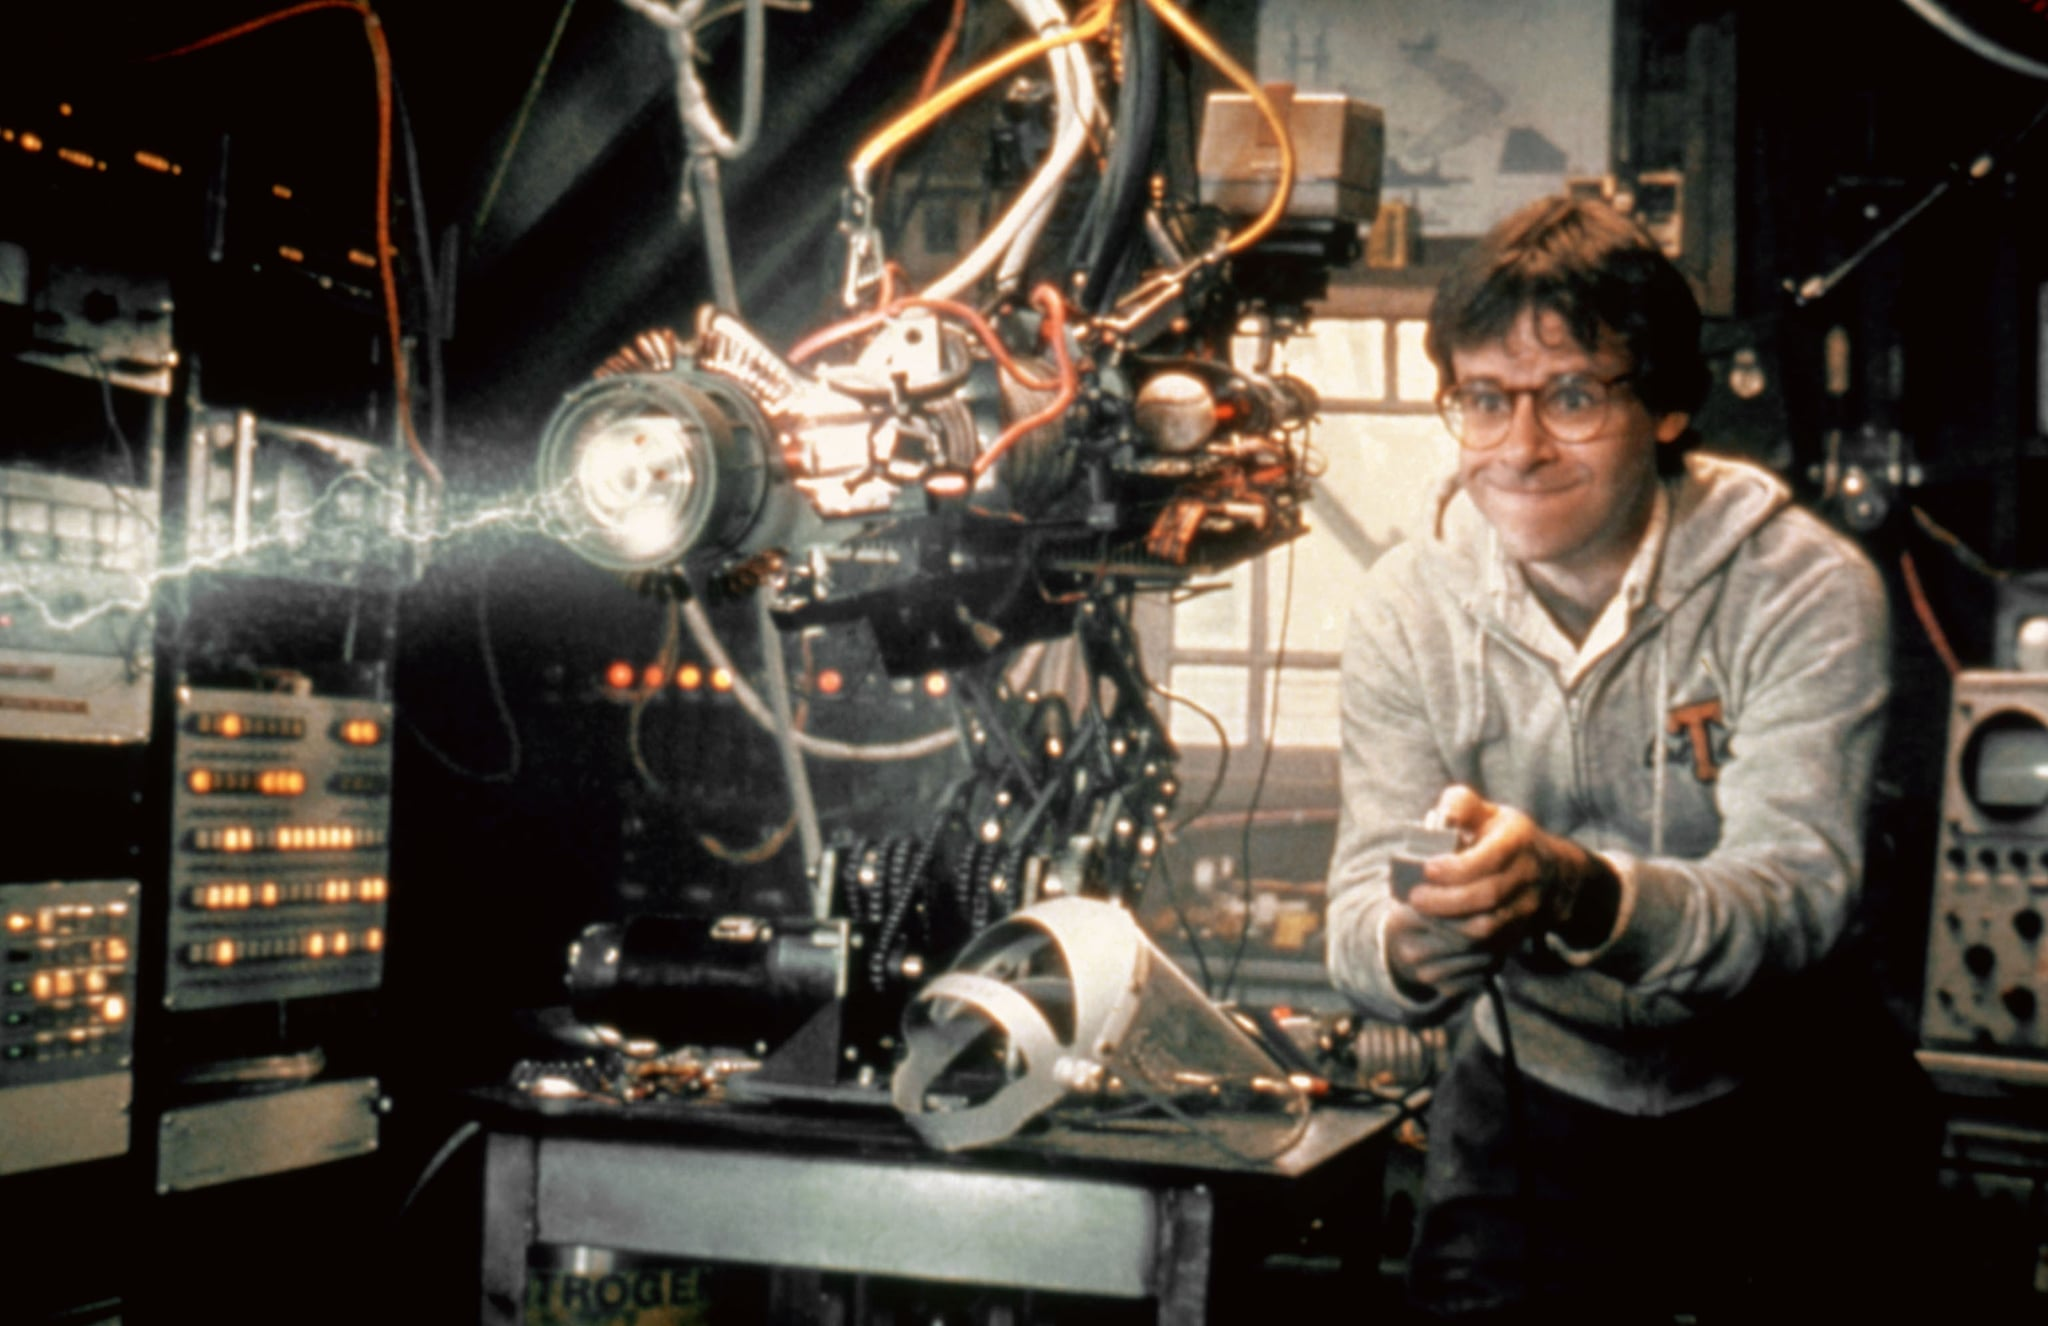 Disney's New Honey, I Shrunk The Kids Sequel: All We Know About The Fourth Movie